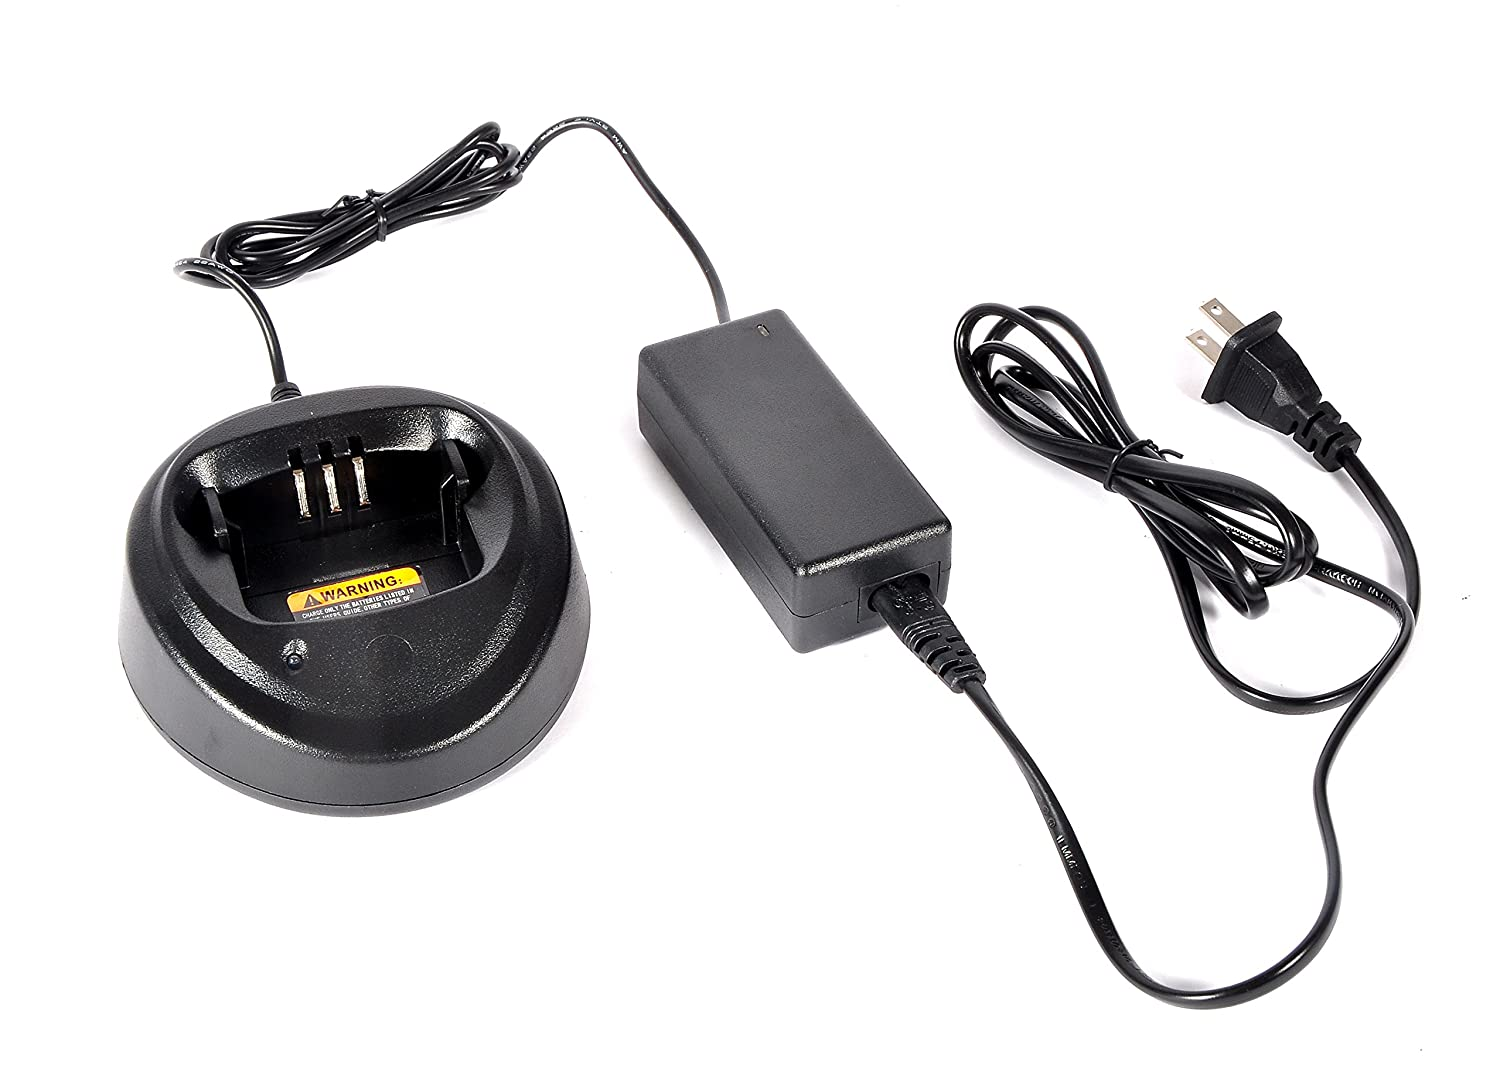 Heyrtz Replacement WPLN4137 PMP4137A Charging Station,Two-Way Radio Rapid Battery Charger Base with 100V-240V Power Adapter for Motorola CP040 CP140 CP150 CP160 CP180 CP200 EP450 PR400 Walkie Talkies BC-CP150